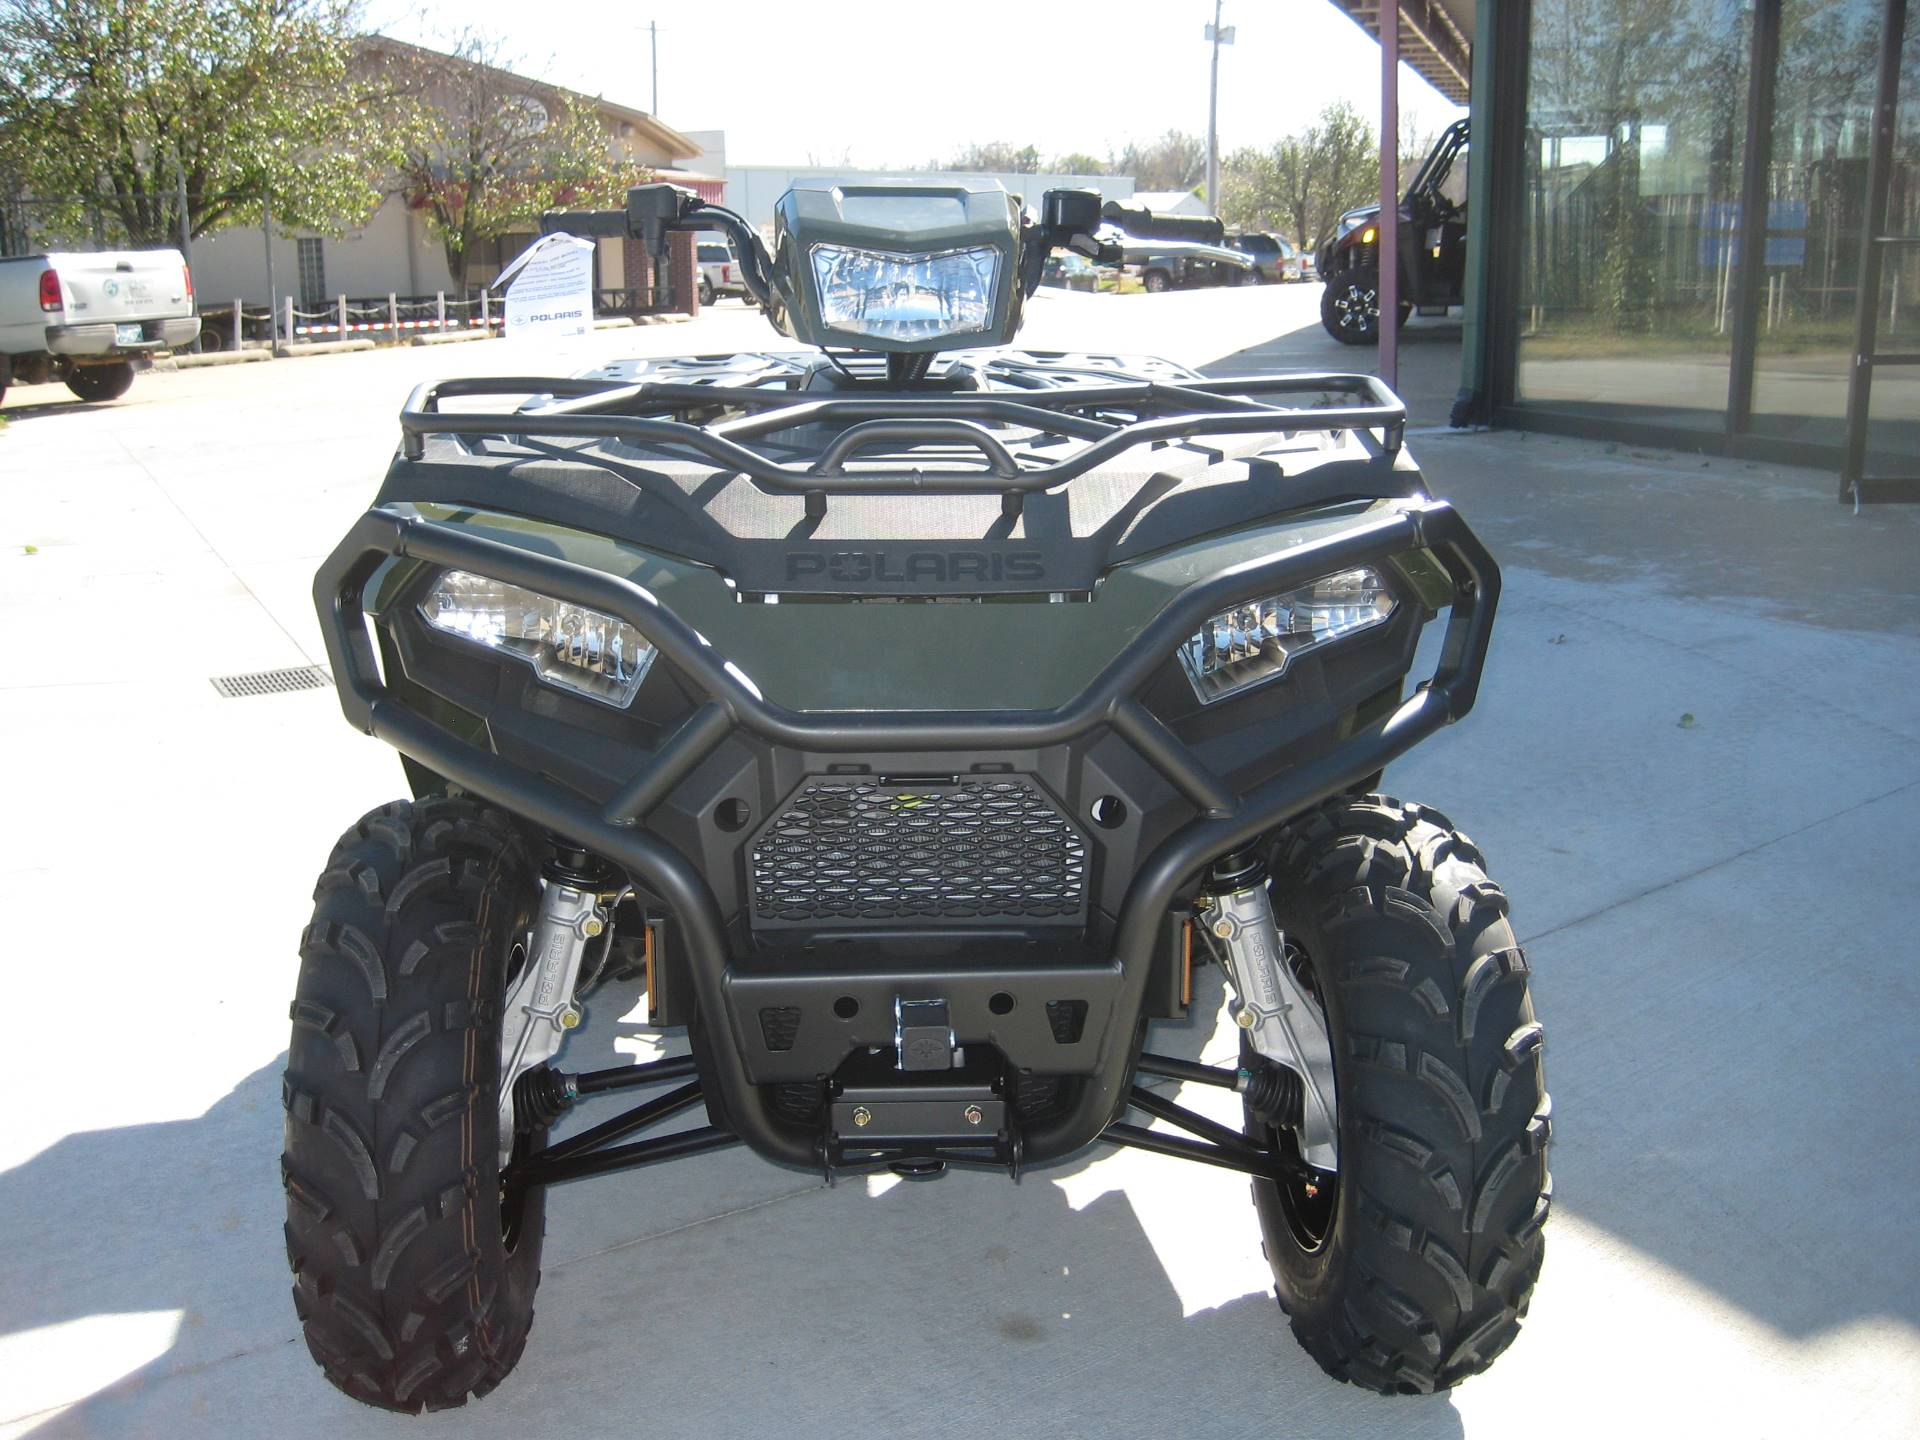 2021 Polaris Sportsman 450 H.O. Utility Package in Broken Arrow, Oklahoma - Photo 3